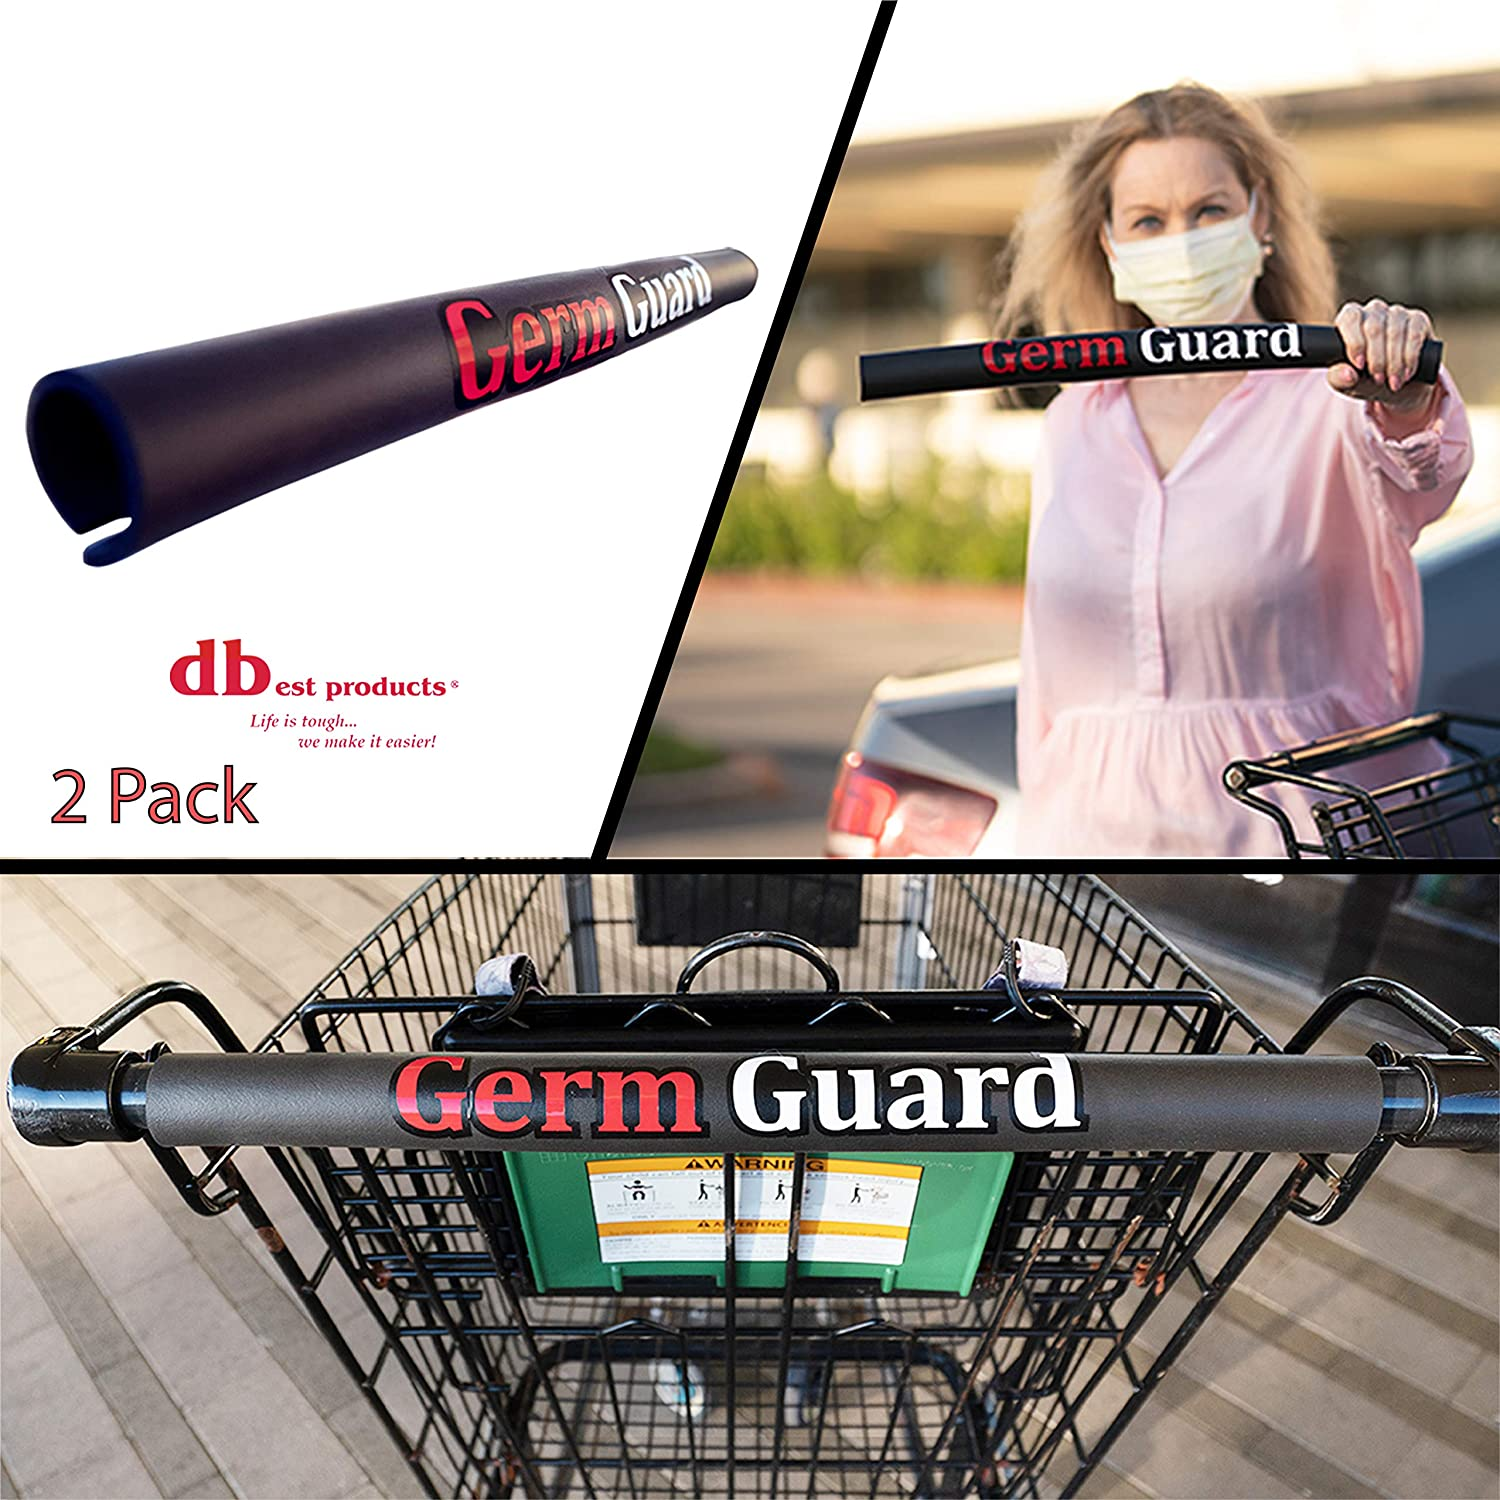 dbest products Germ Guard 10 Pack Black Contactless Supermarket Shopping Cart Handle Cover Protection Prevents The Spread Glove Alternative PPE